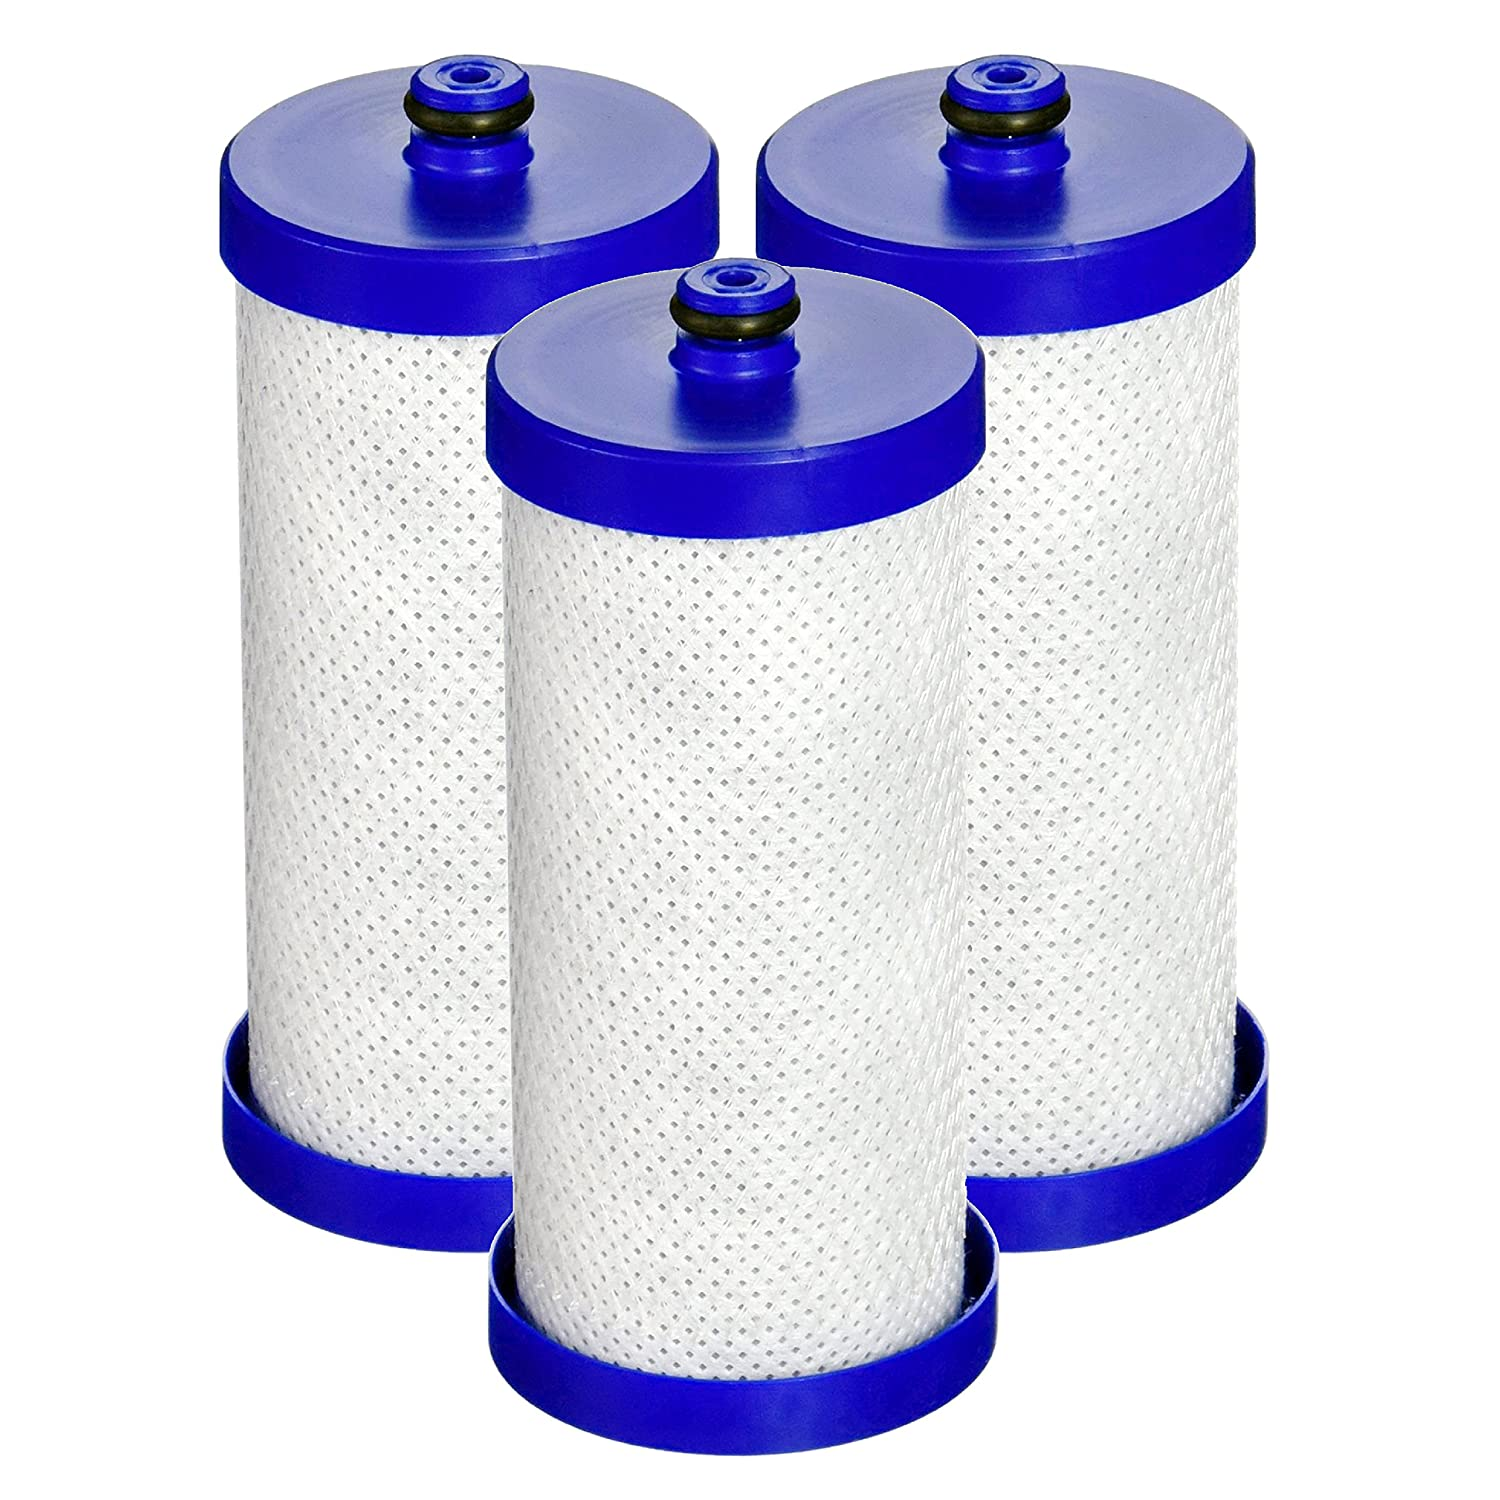 Waterdrop Refrigerator Water Filter, Compatible with WF1CB, WFCB, RG100, NGRG2000, WF284, 9910, 469906, 469910, Pack of 3